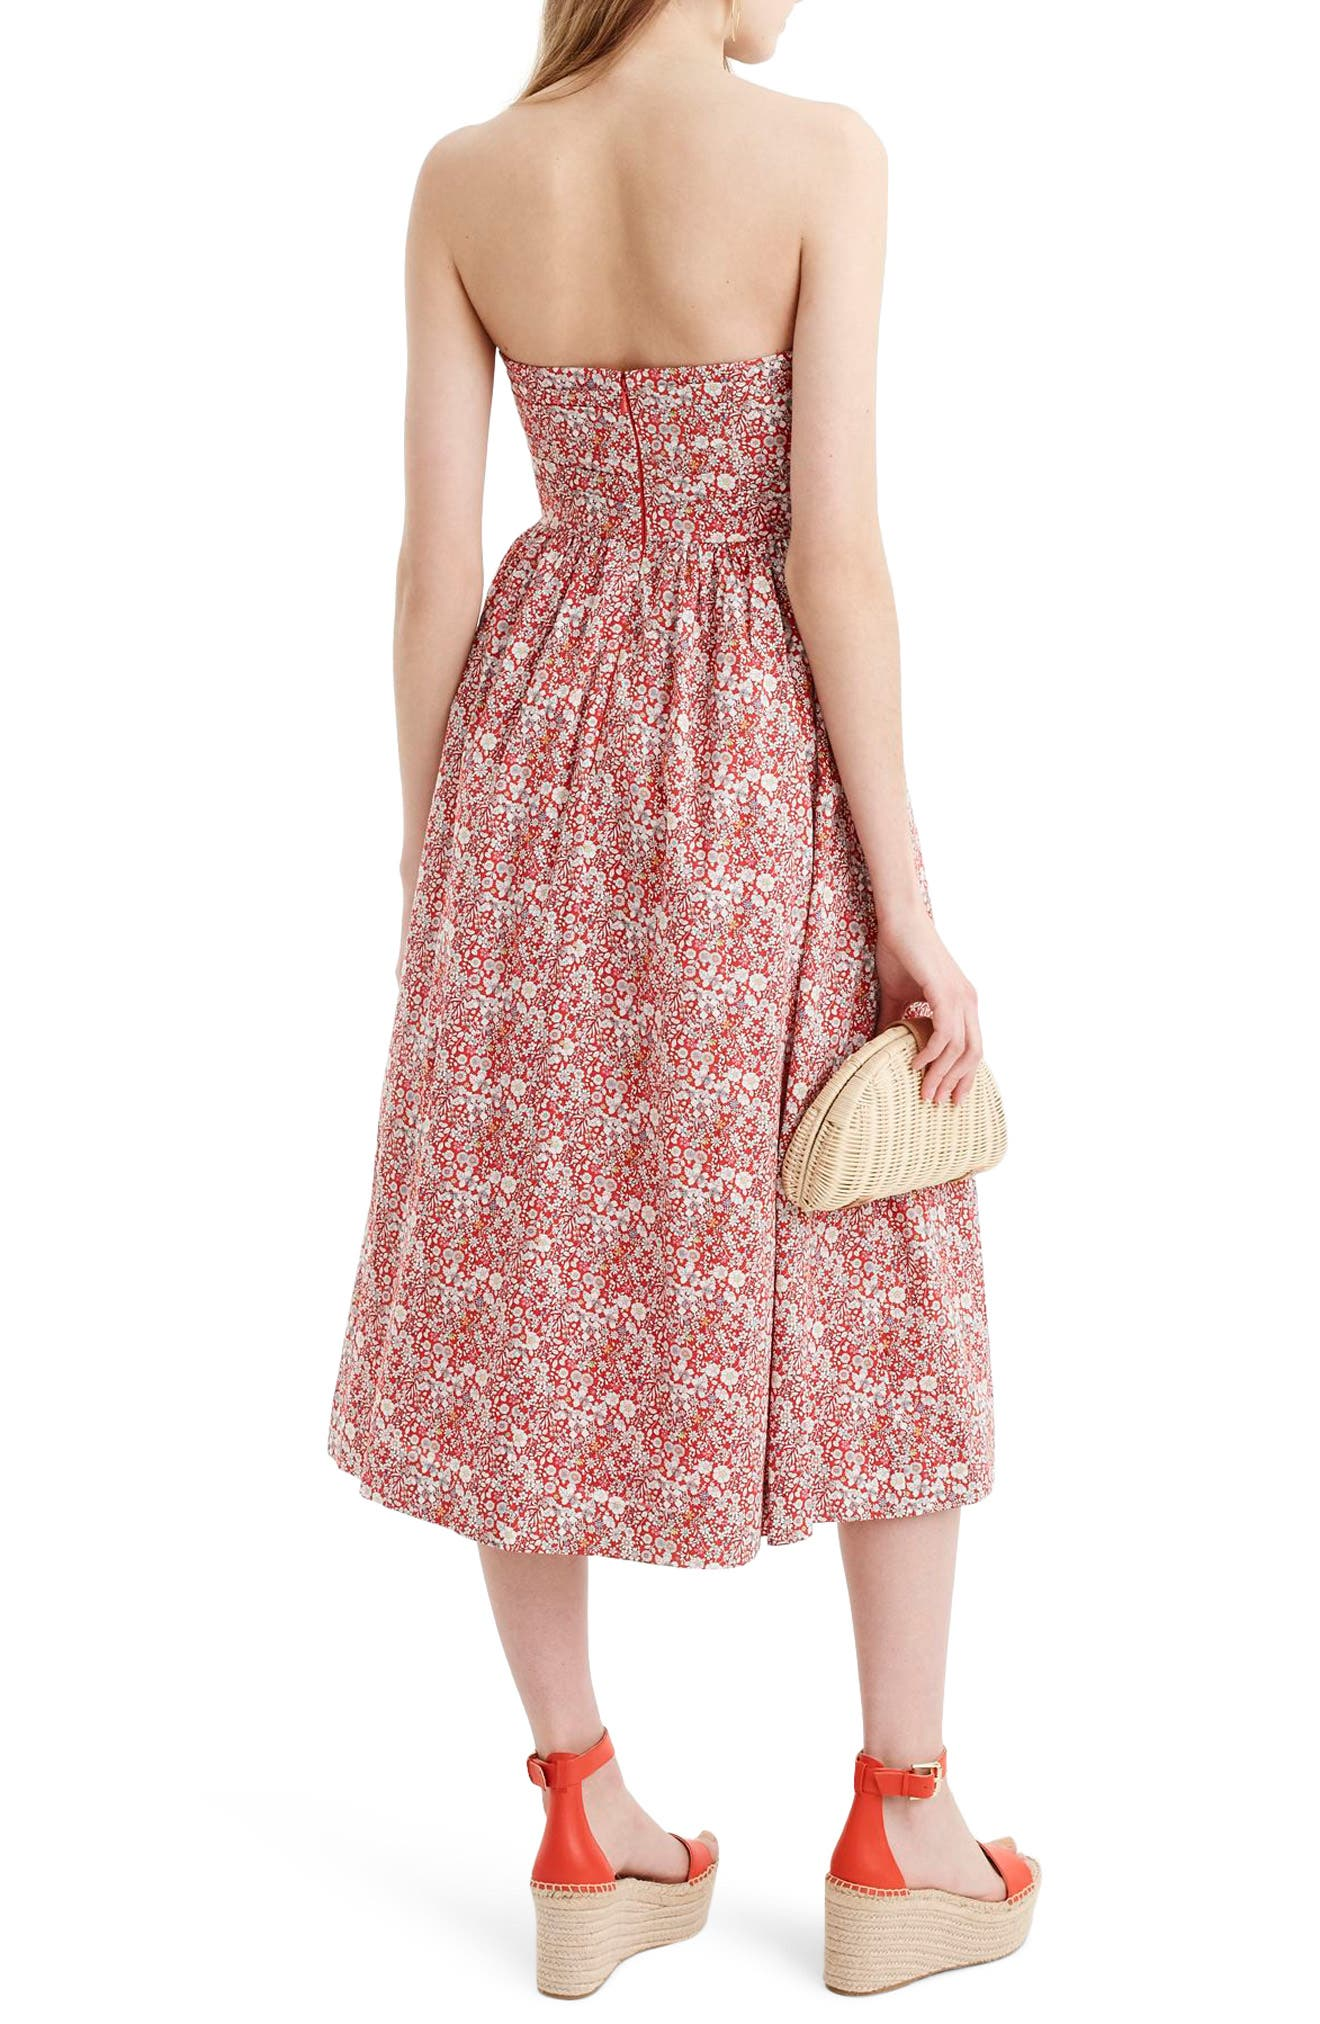 Liberty Tie Front Strapless Dress,                             Alternate thumbnail 2, color,                             600